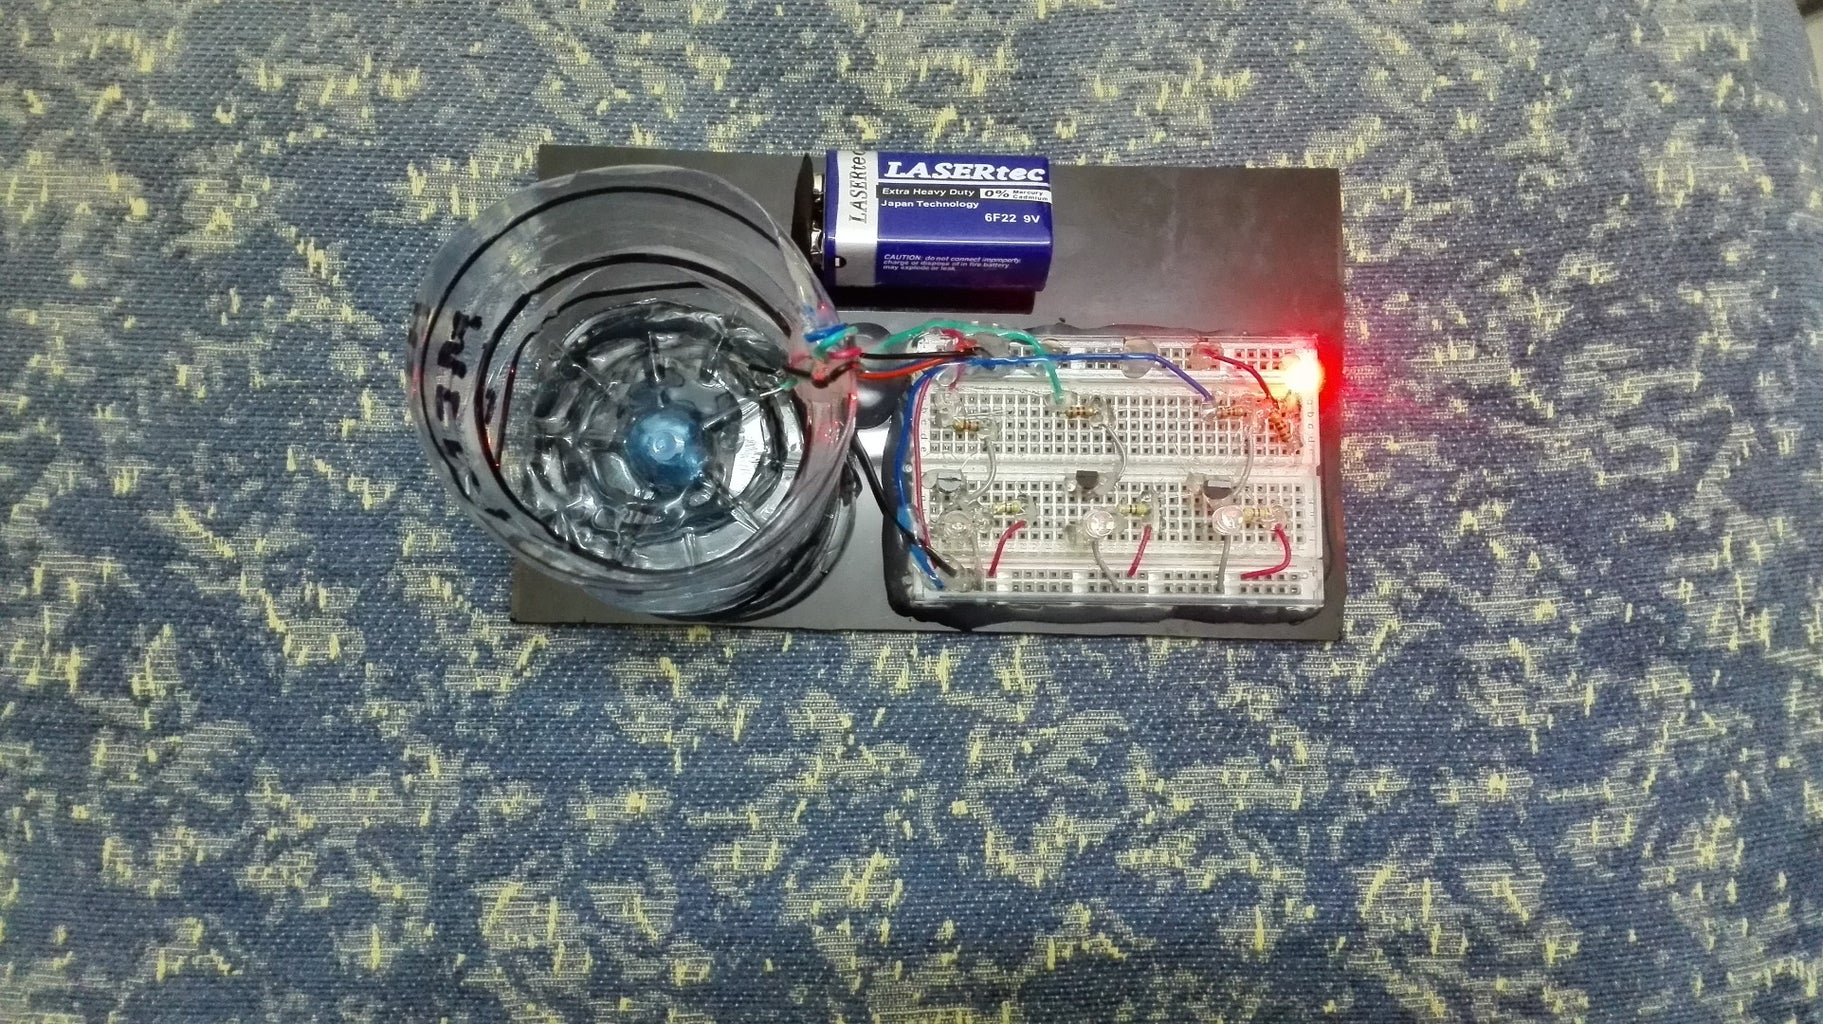 Project Powered With Battery (Red LED Indication Shows Its ON)